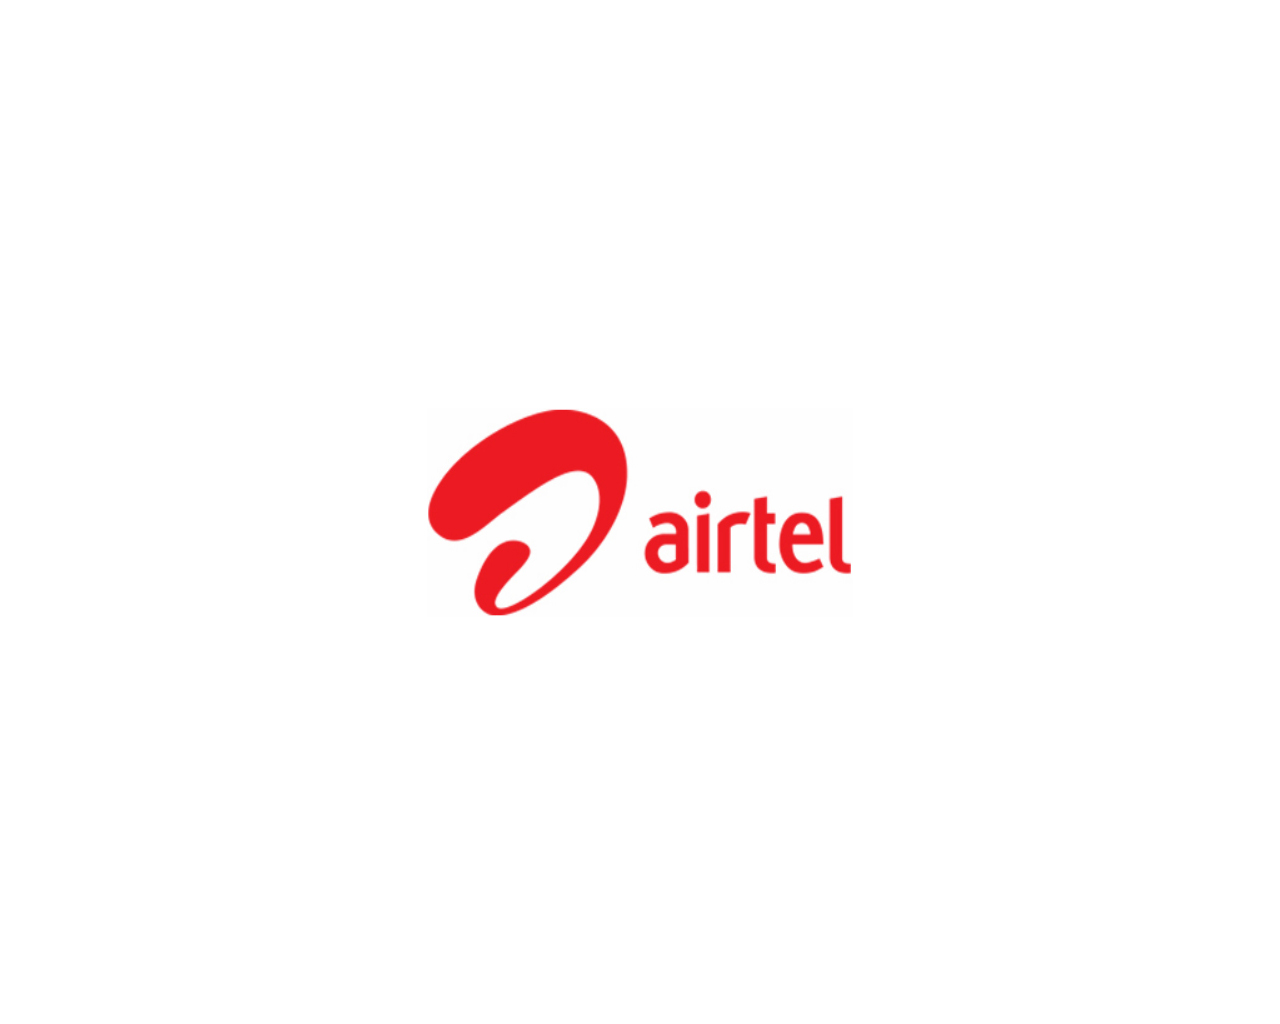 Airtel dating site